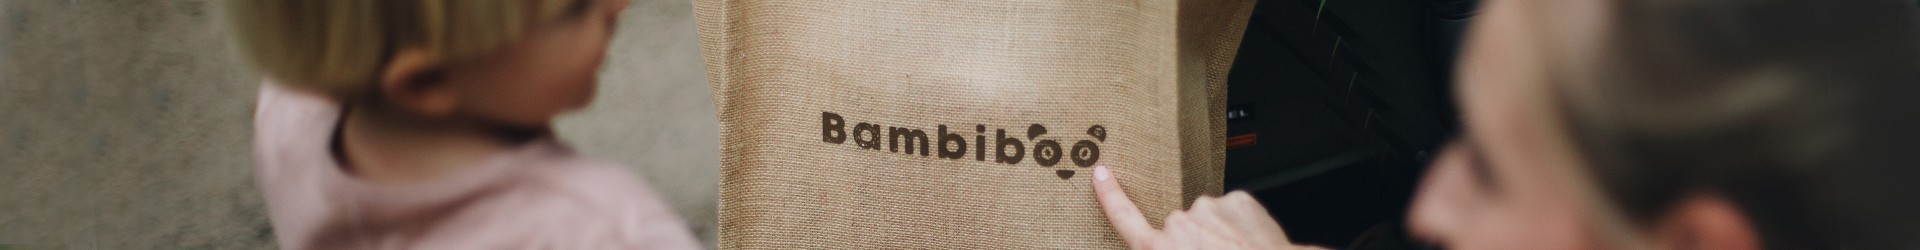 Products and accessories | Bambiboo.eu